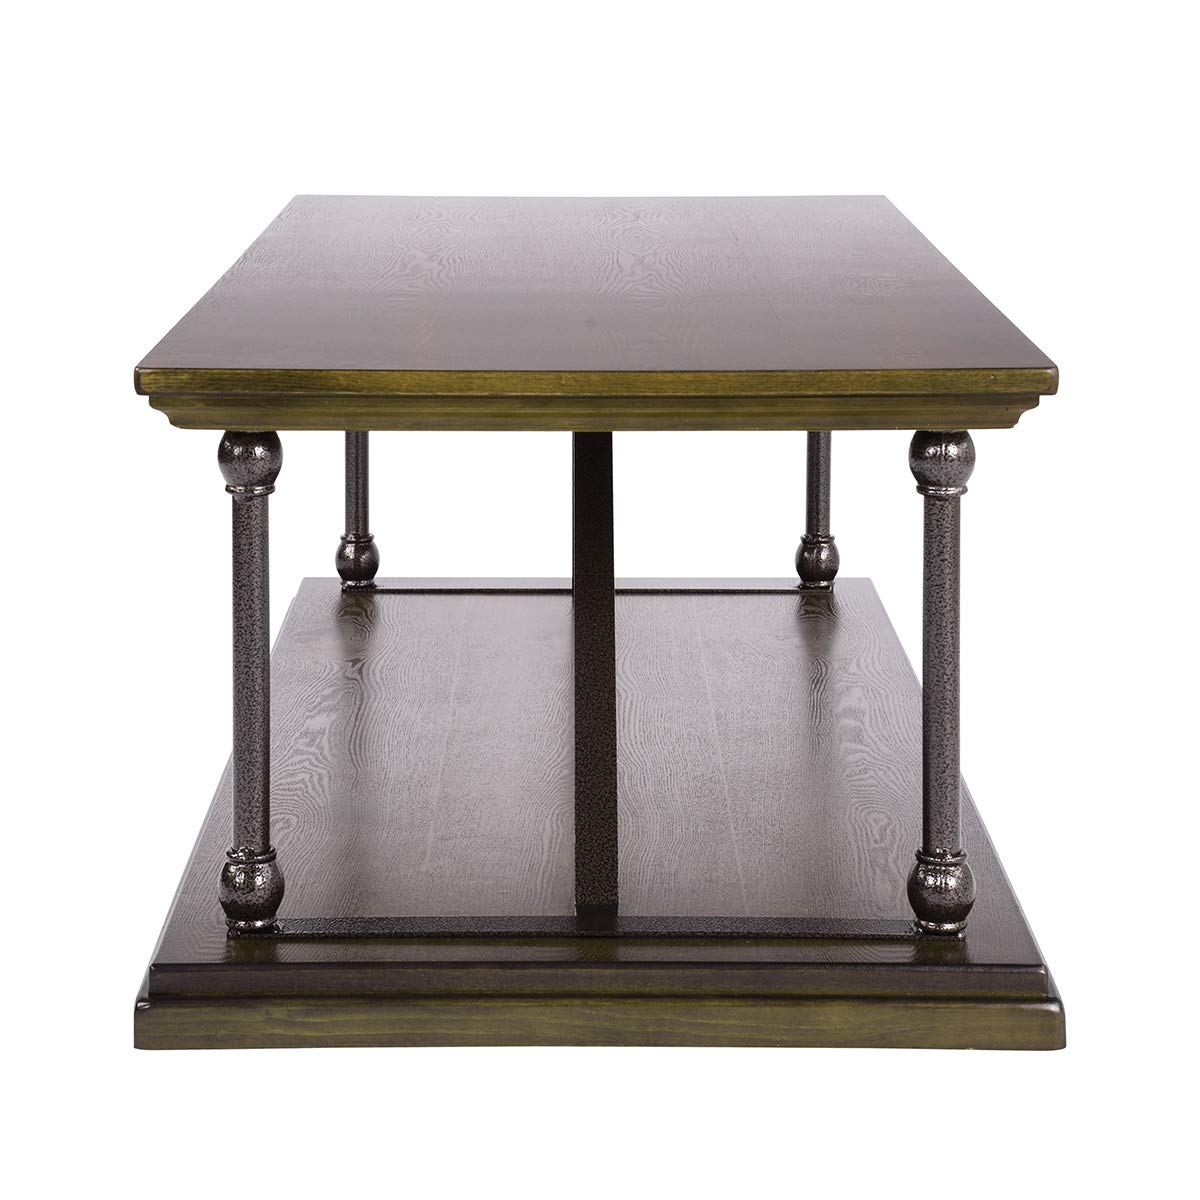 Wood Ihouse Wood Feet Accent End Table Coffee Table Tv Tray with Storage Drawer for Home Office